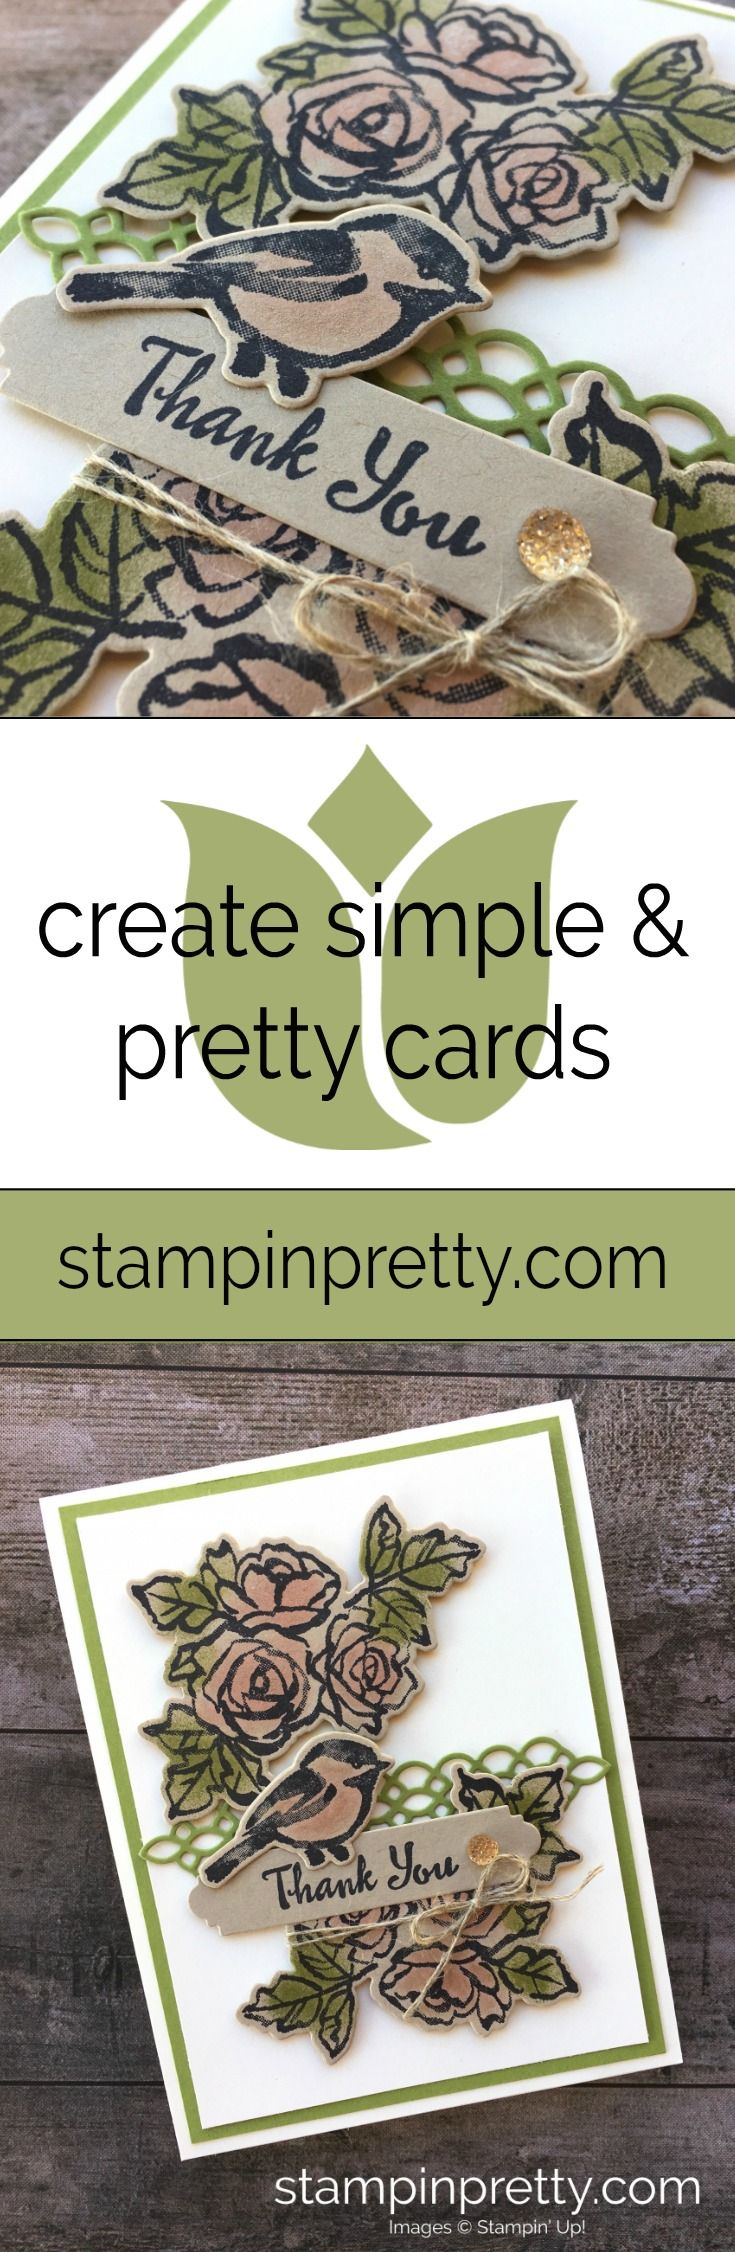 18394 Best Others Stampin Up Cards Images On Pinterest